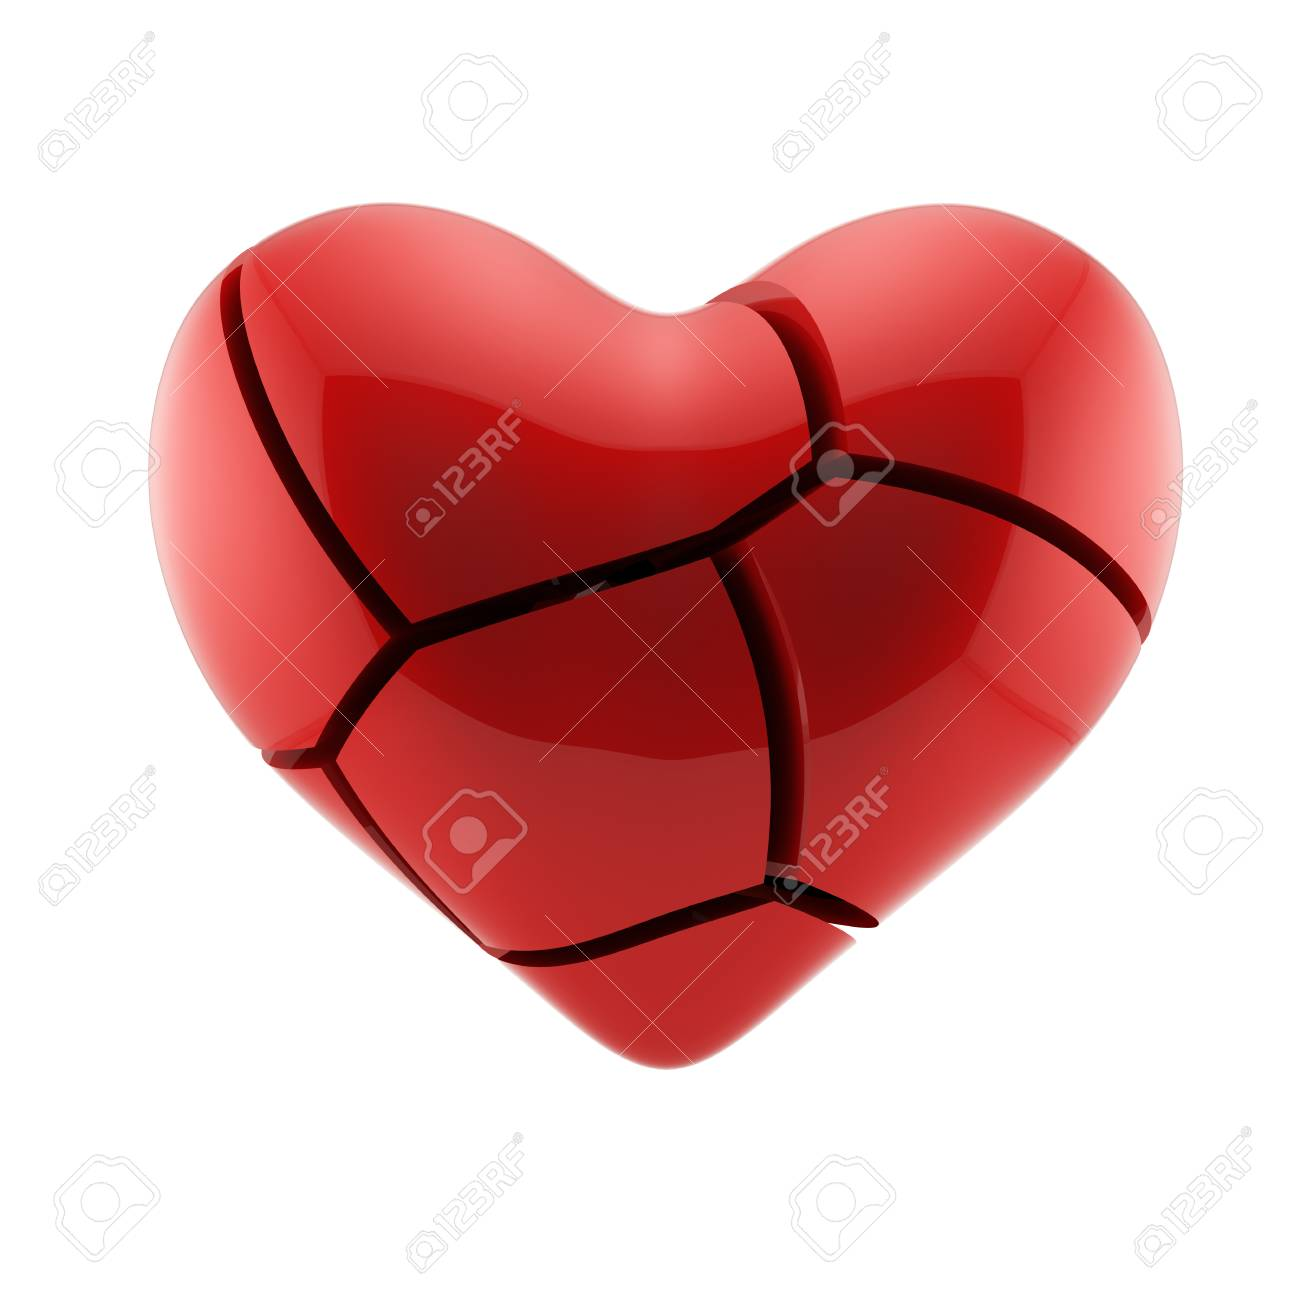 3d Render Of Broken Heart Isolated On White Background Stock Photo